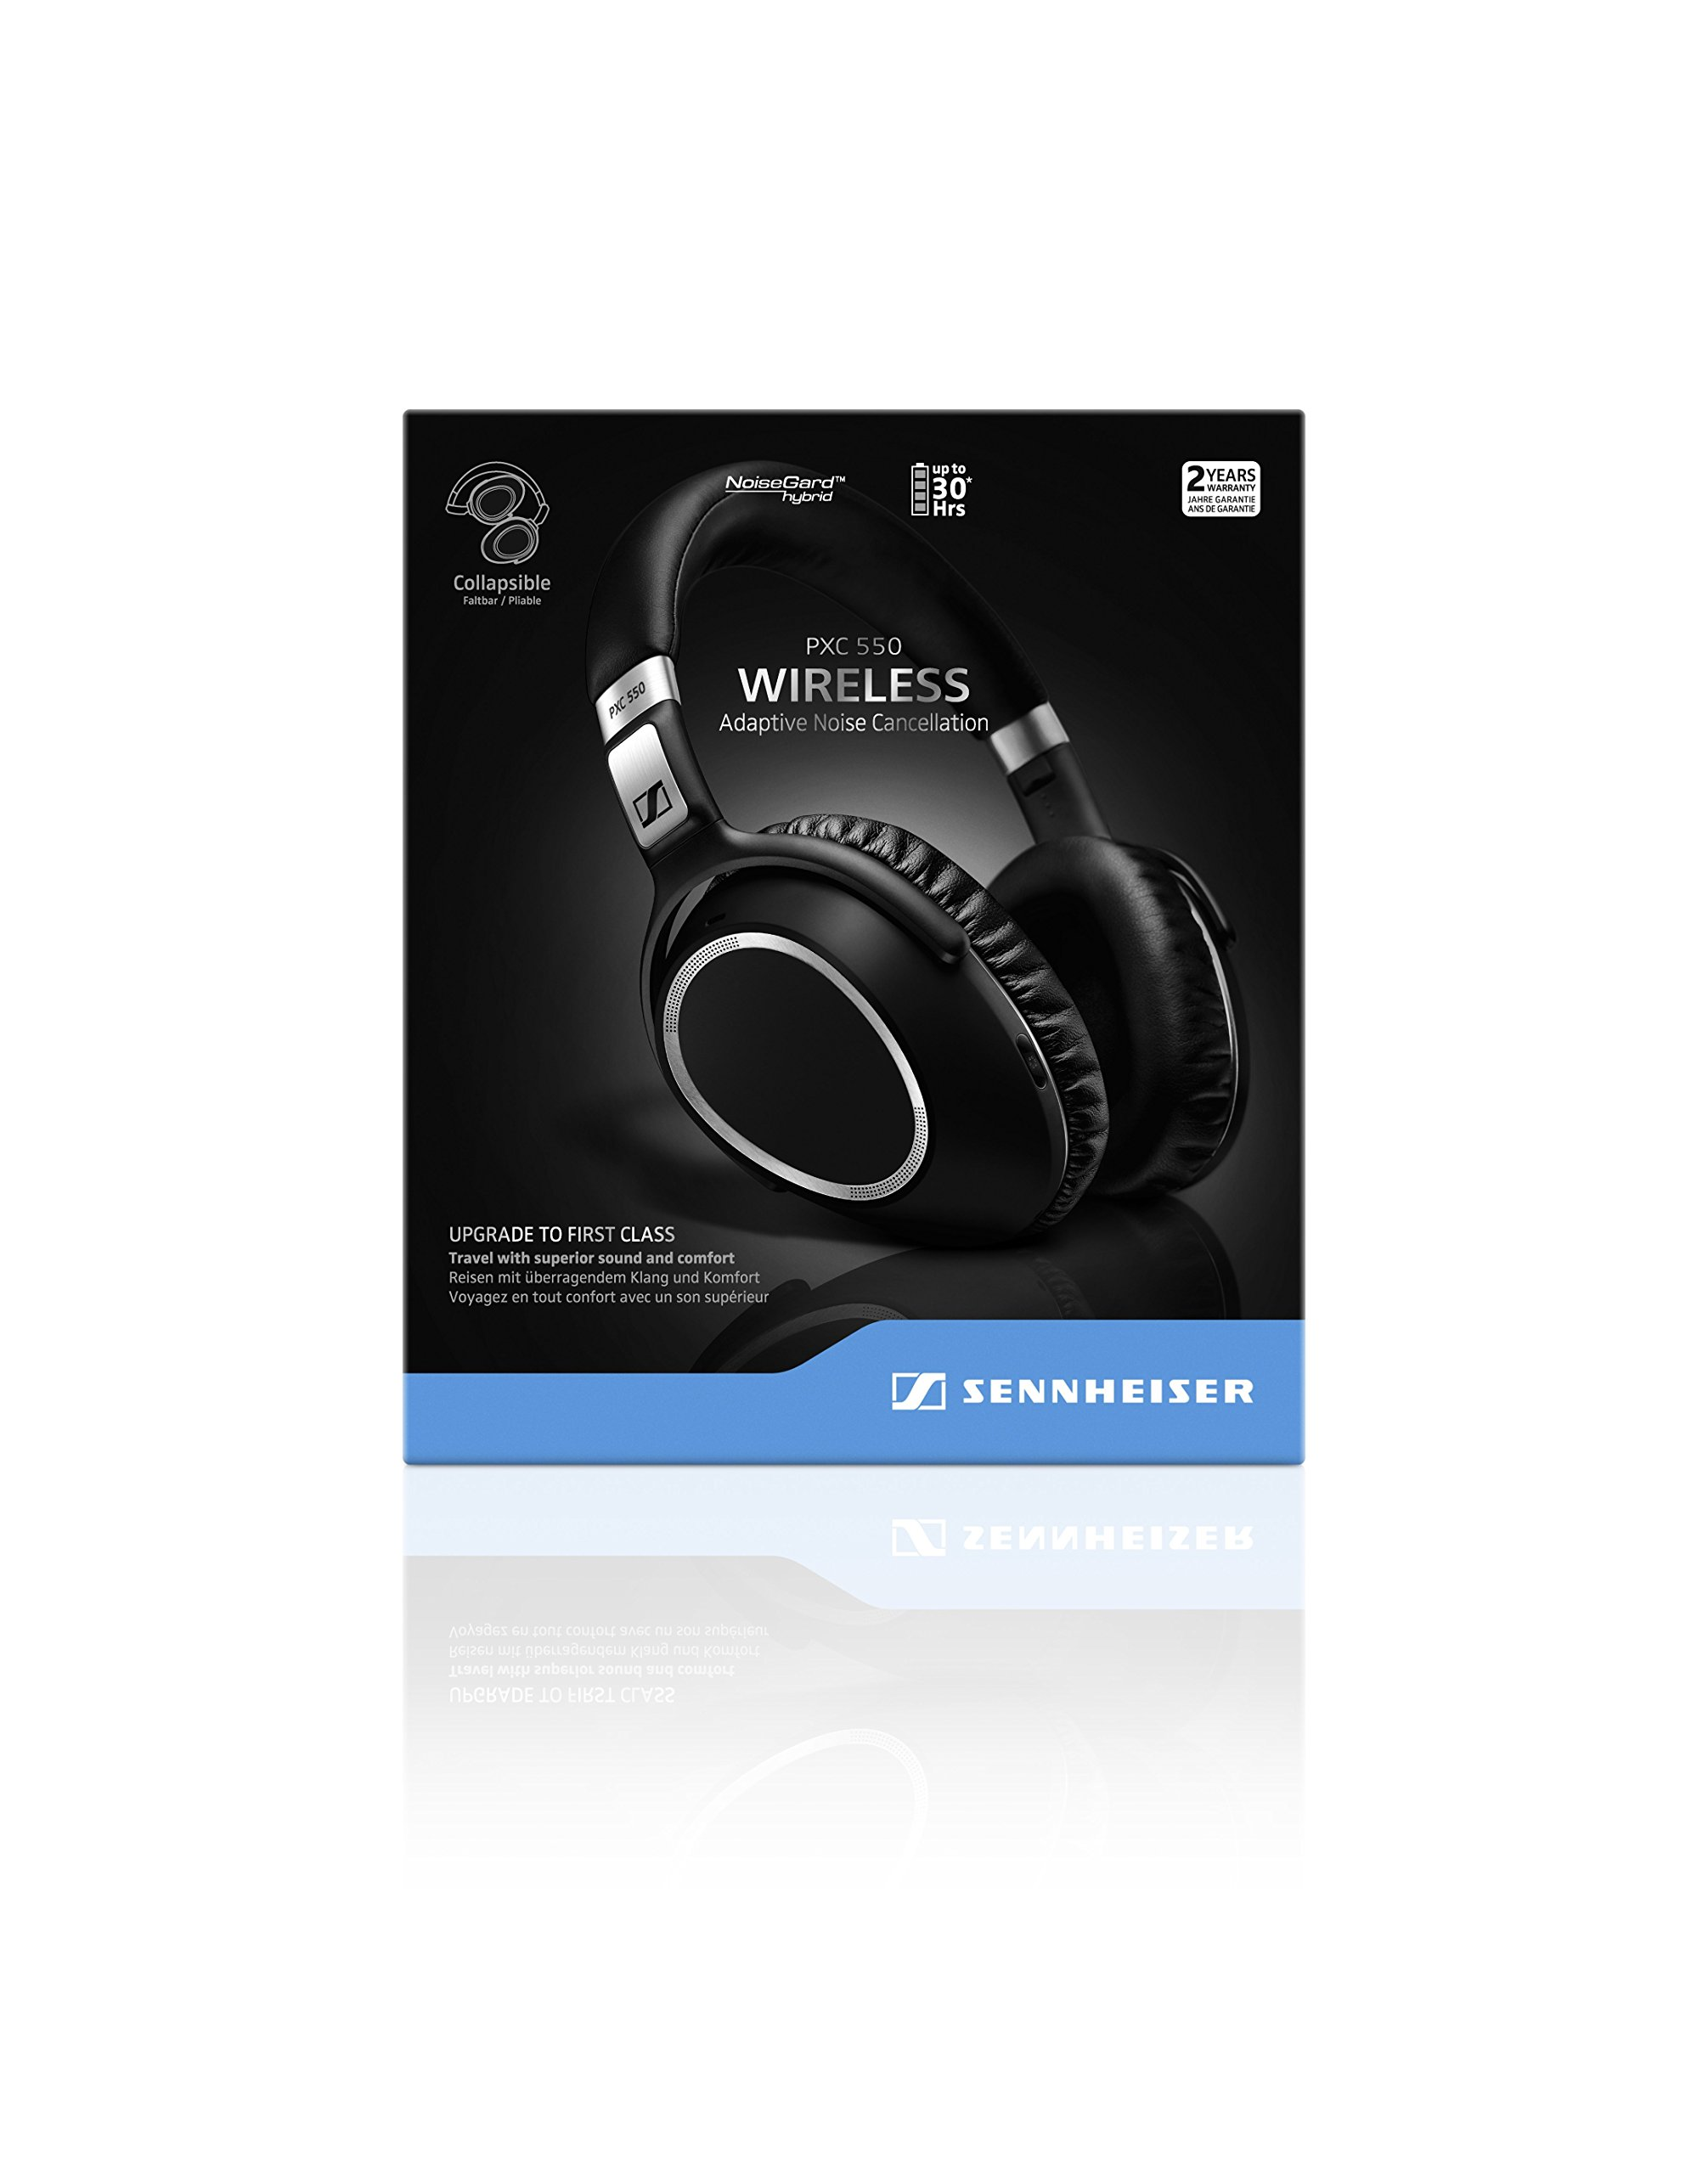 Sennheiser PXC 550 Wireless – NoiseGard Adaptive Noise Cancelling, Bluetooth Headphone with Touch Sensitive Control and 30-Hour Battery Life by Sennheiser (Image #8)